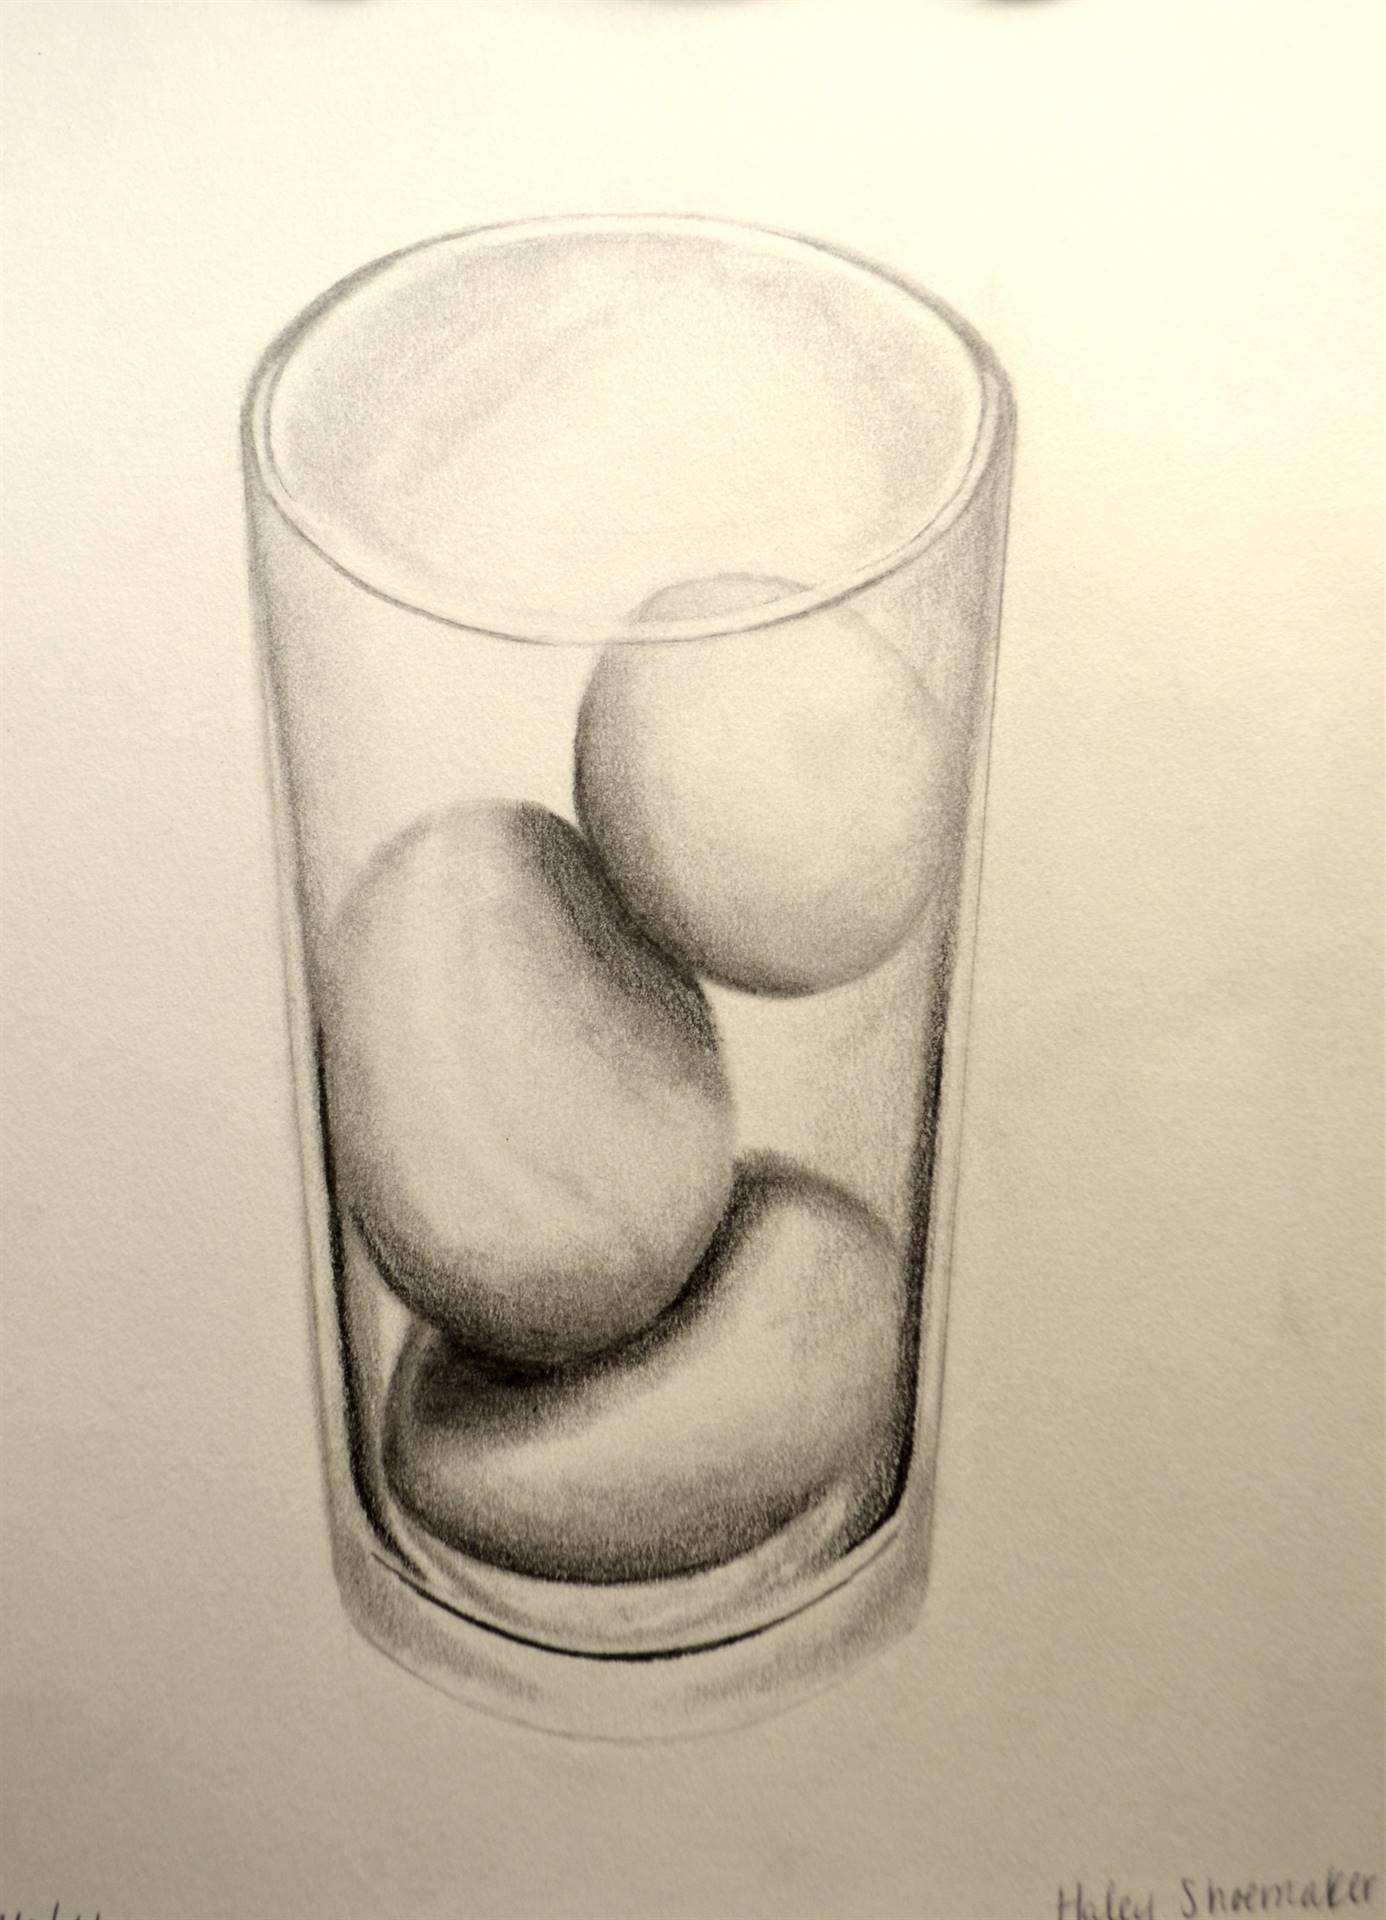 Haley Shoemaker, 3 Eggs in a Glass, graphite, 12 x 9, 20016